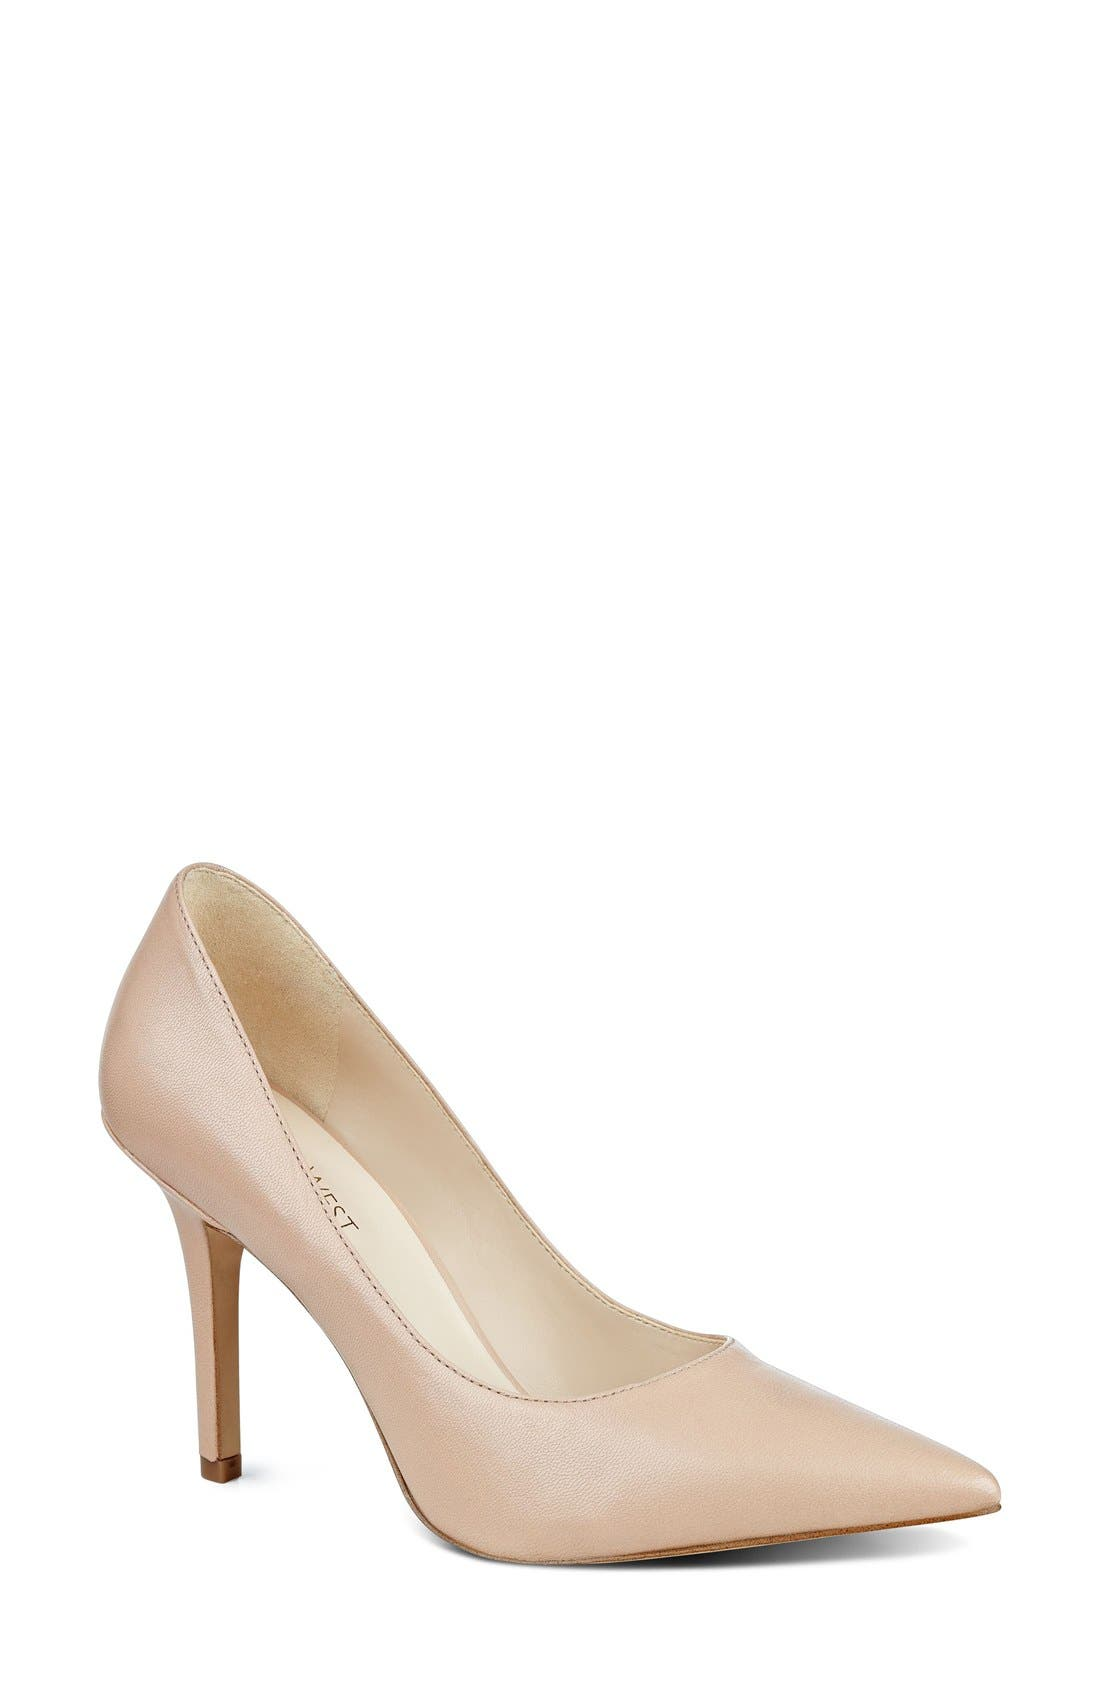 Main Image - Nine West 'Jackpot' Pointy Toe Pump (Women)